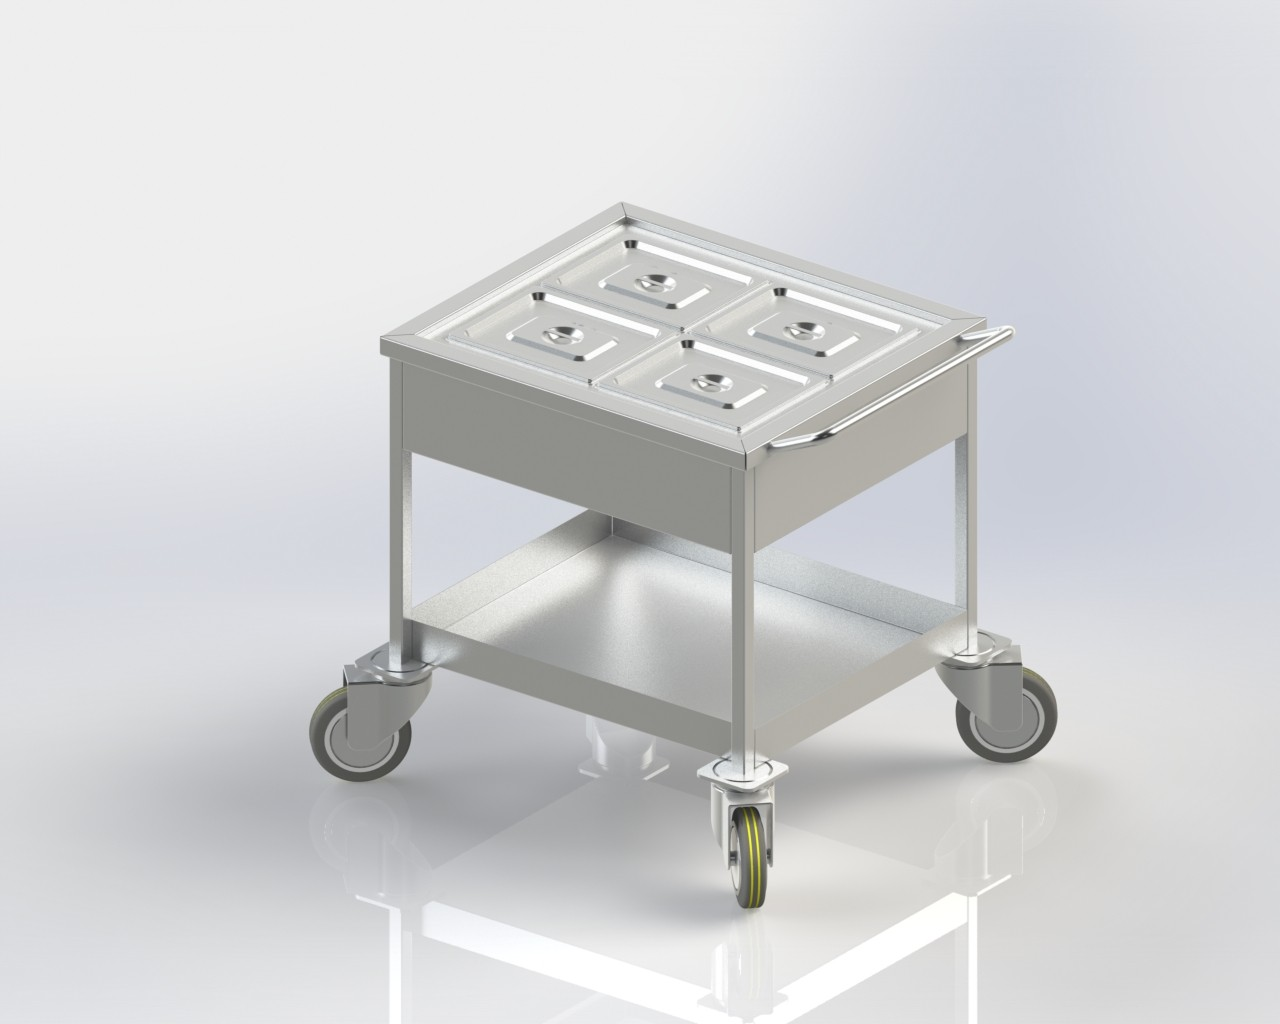 Food Service Trolley keeps food warm while serving.